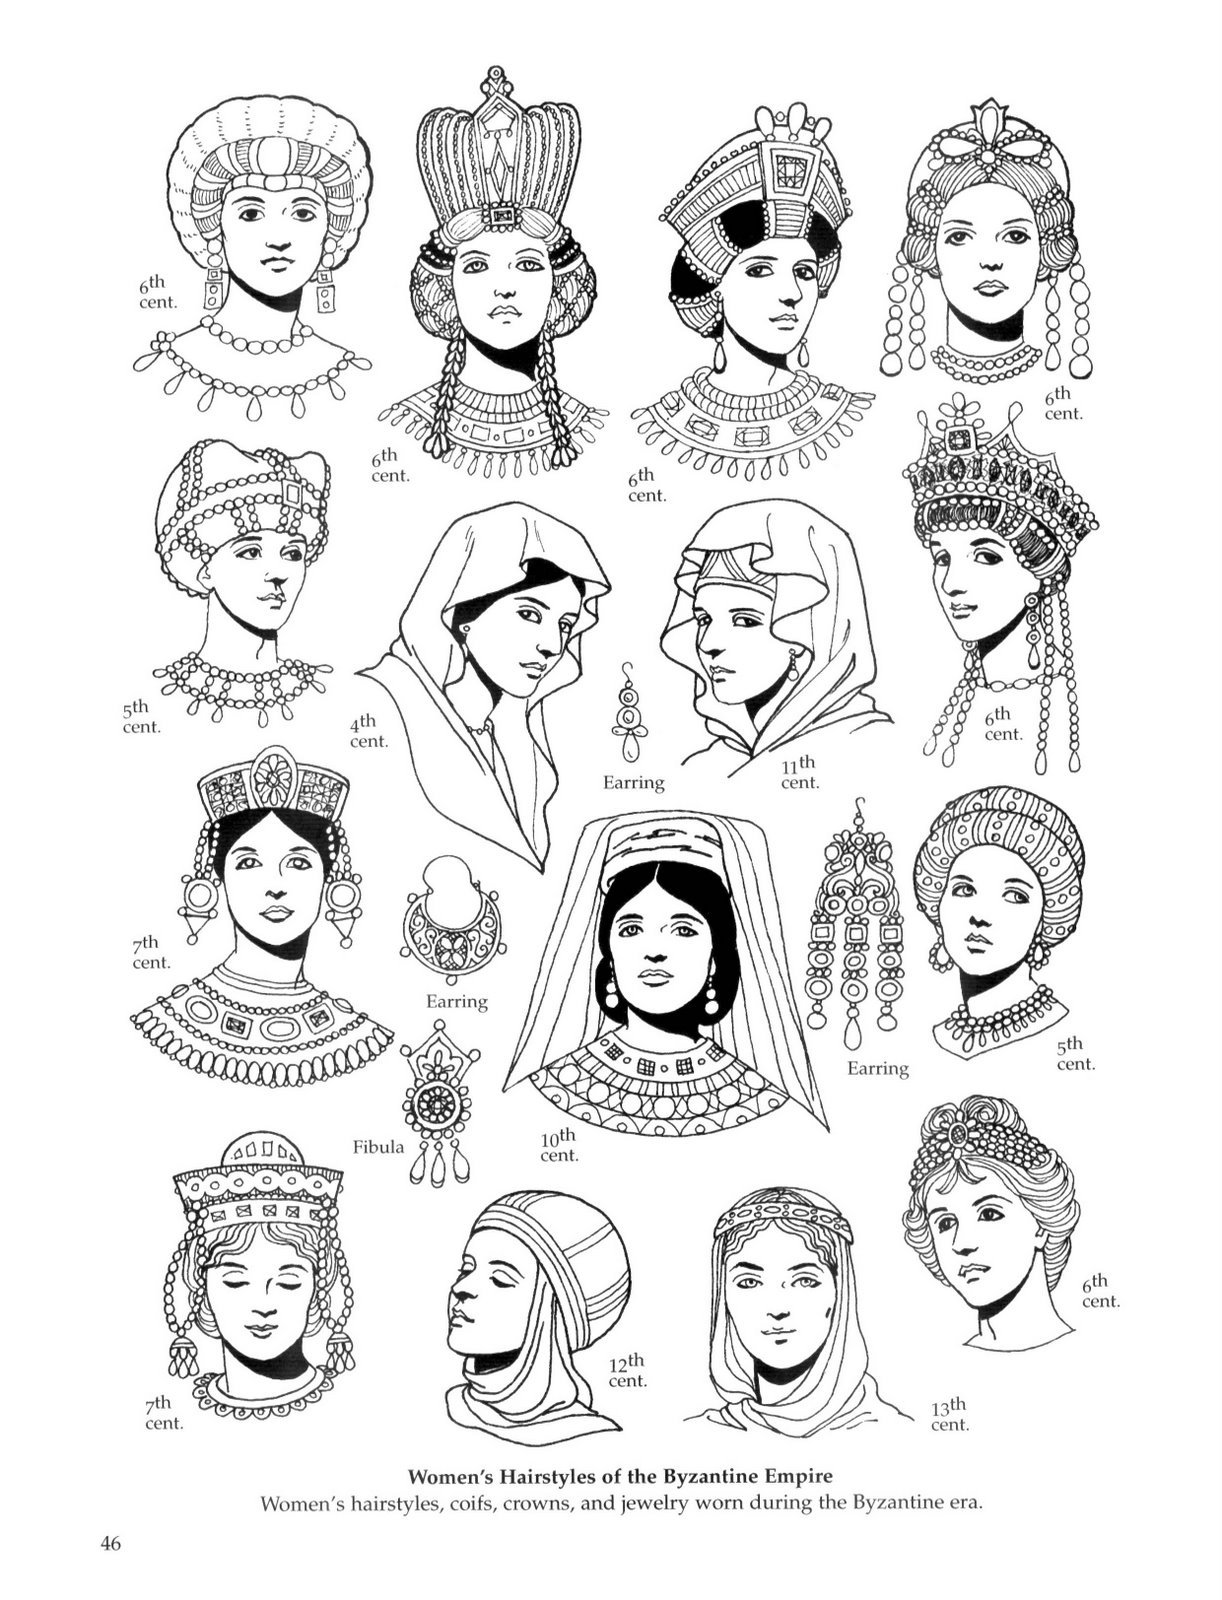 Women's Hairstyles of the Byzantine Empire Via